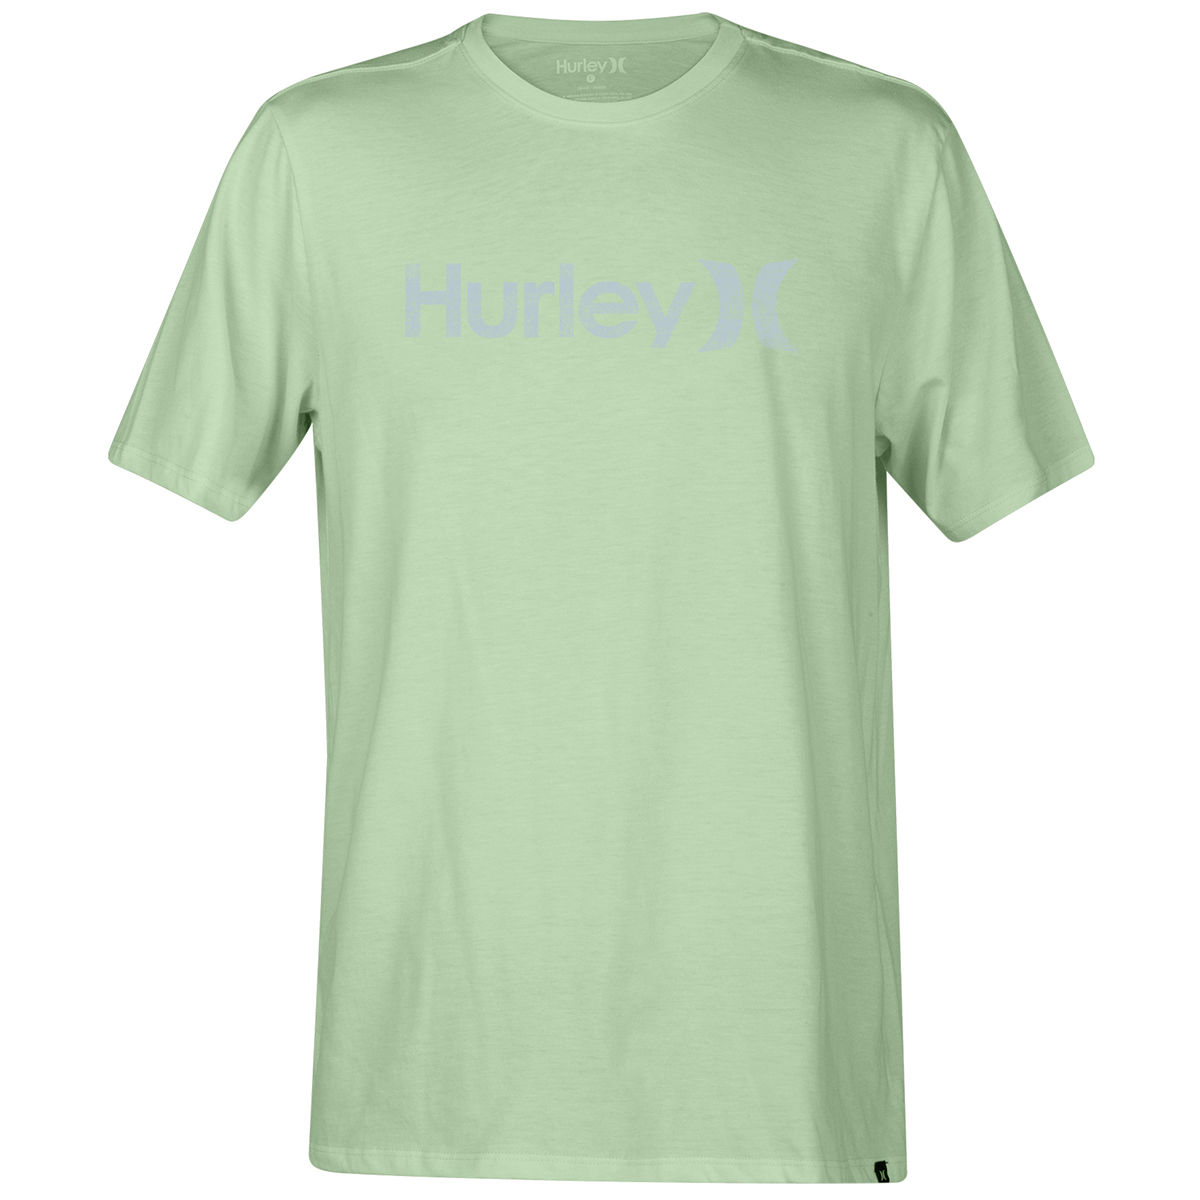 Hurley Guys' One And Only Push Through Short-Sleeve Tee - Green, XL